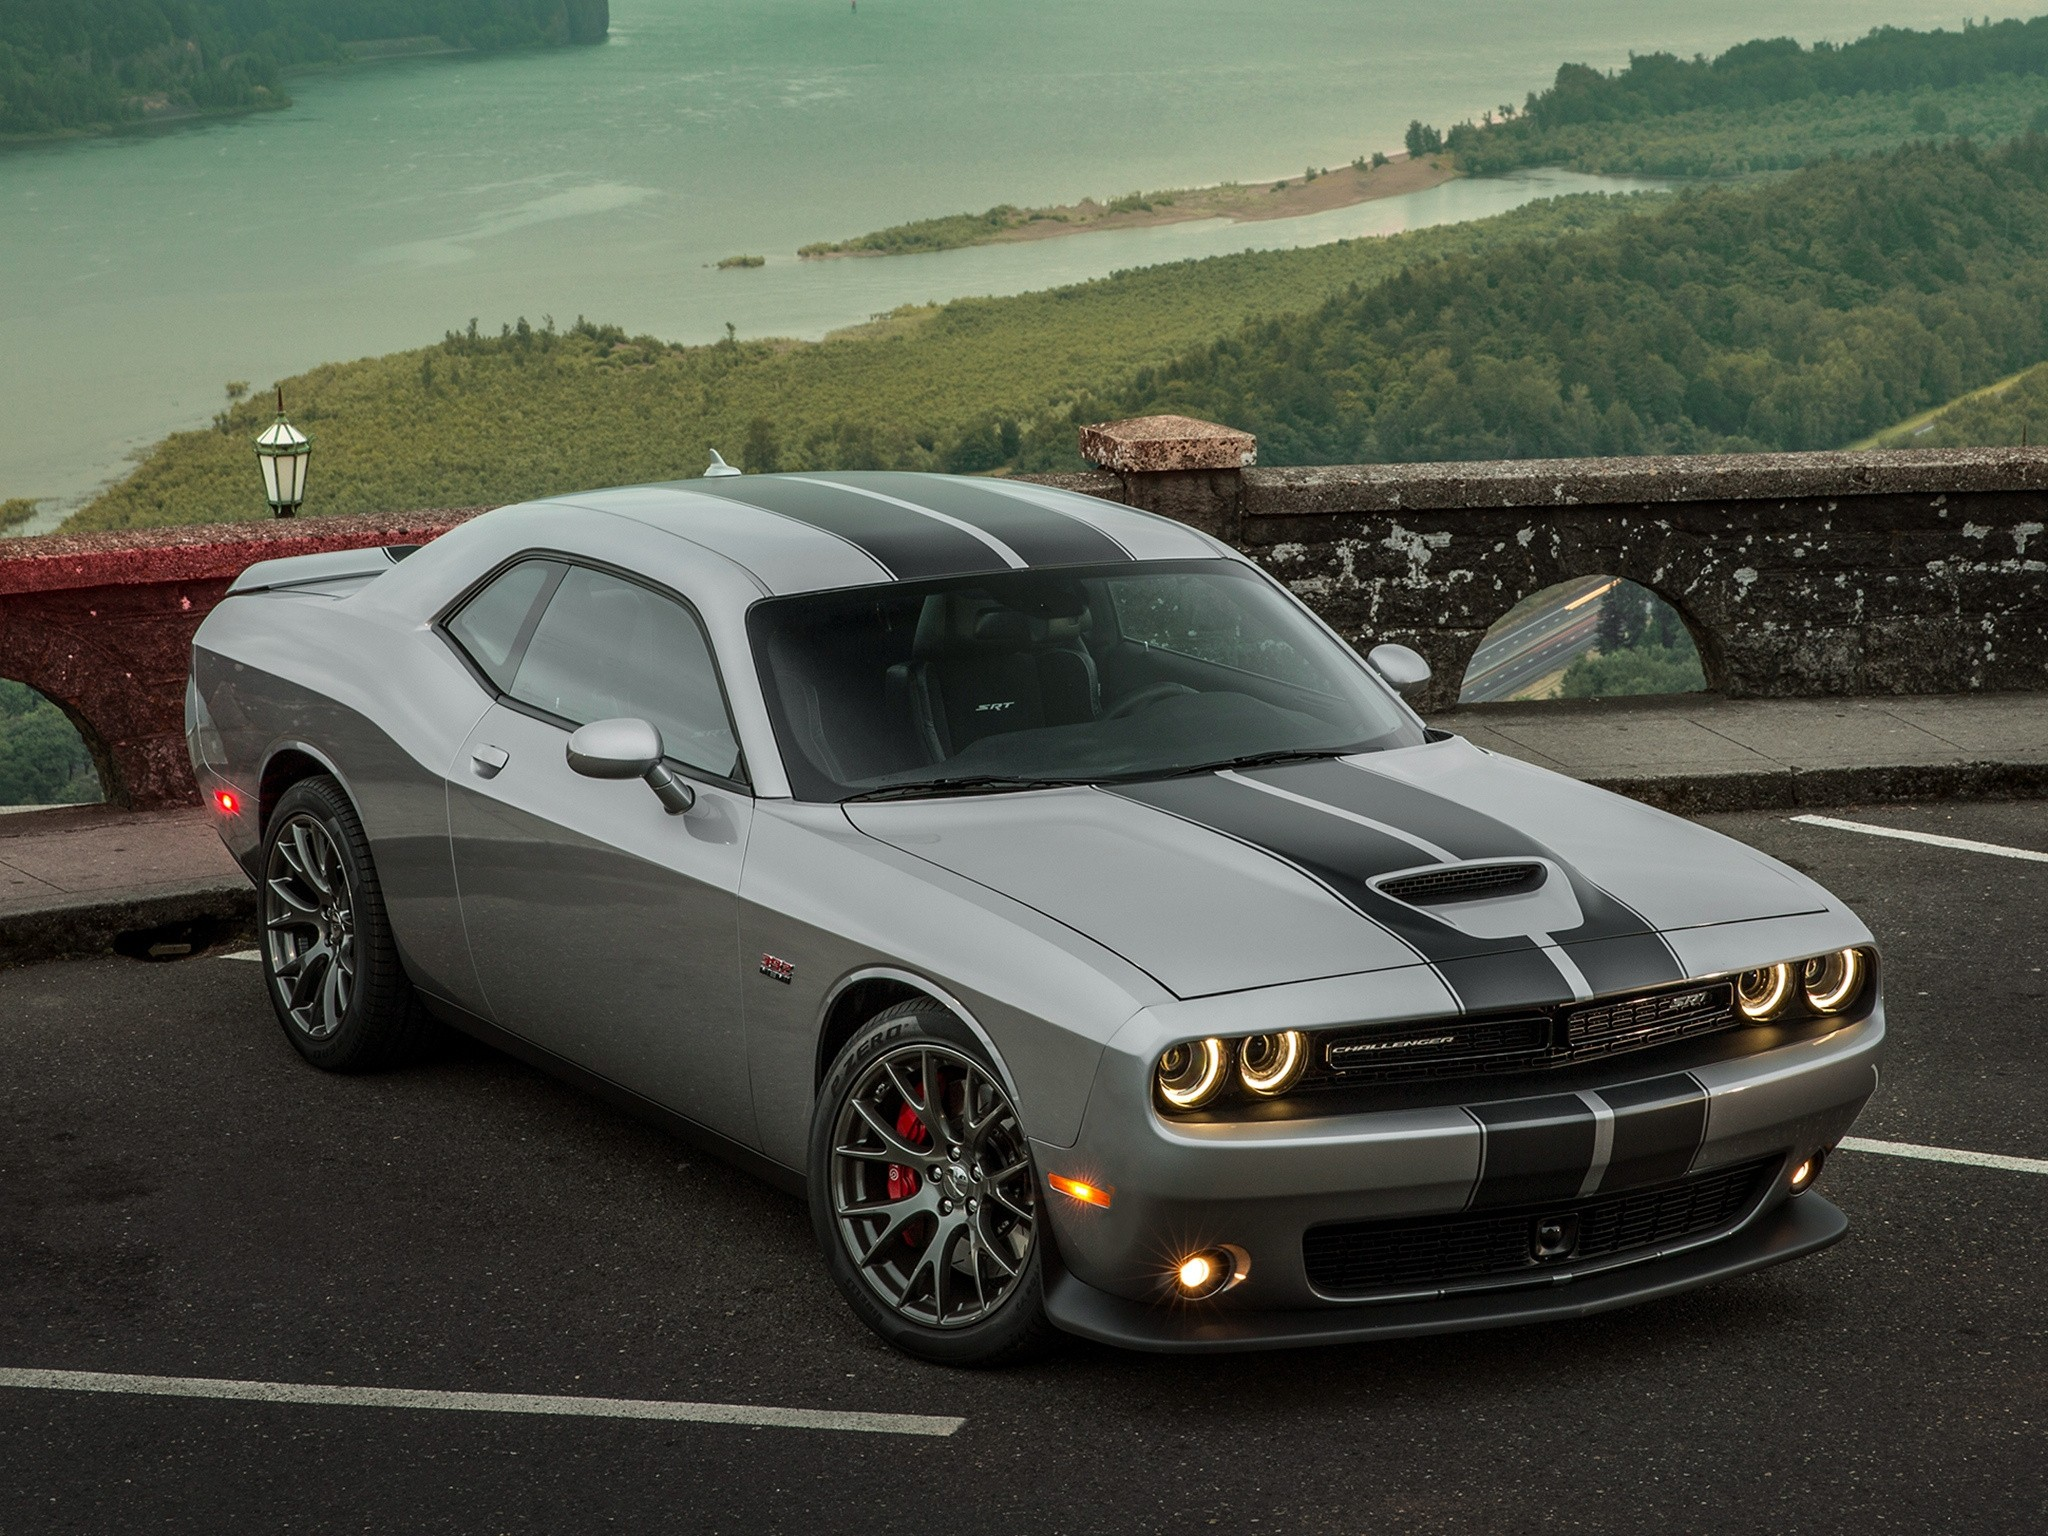 Challenger Dodge Muscle Car Wallpaper 143570 2048x1536